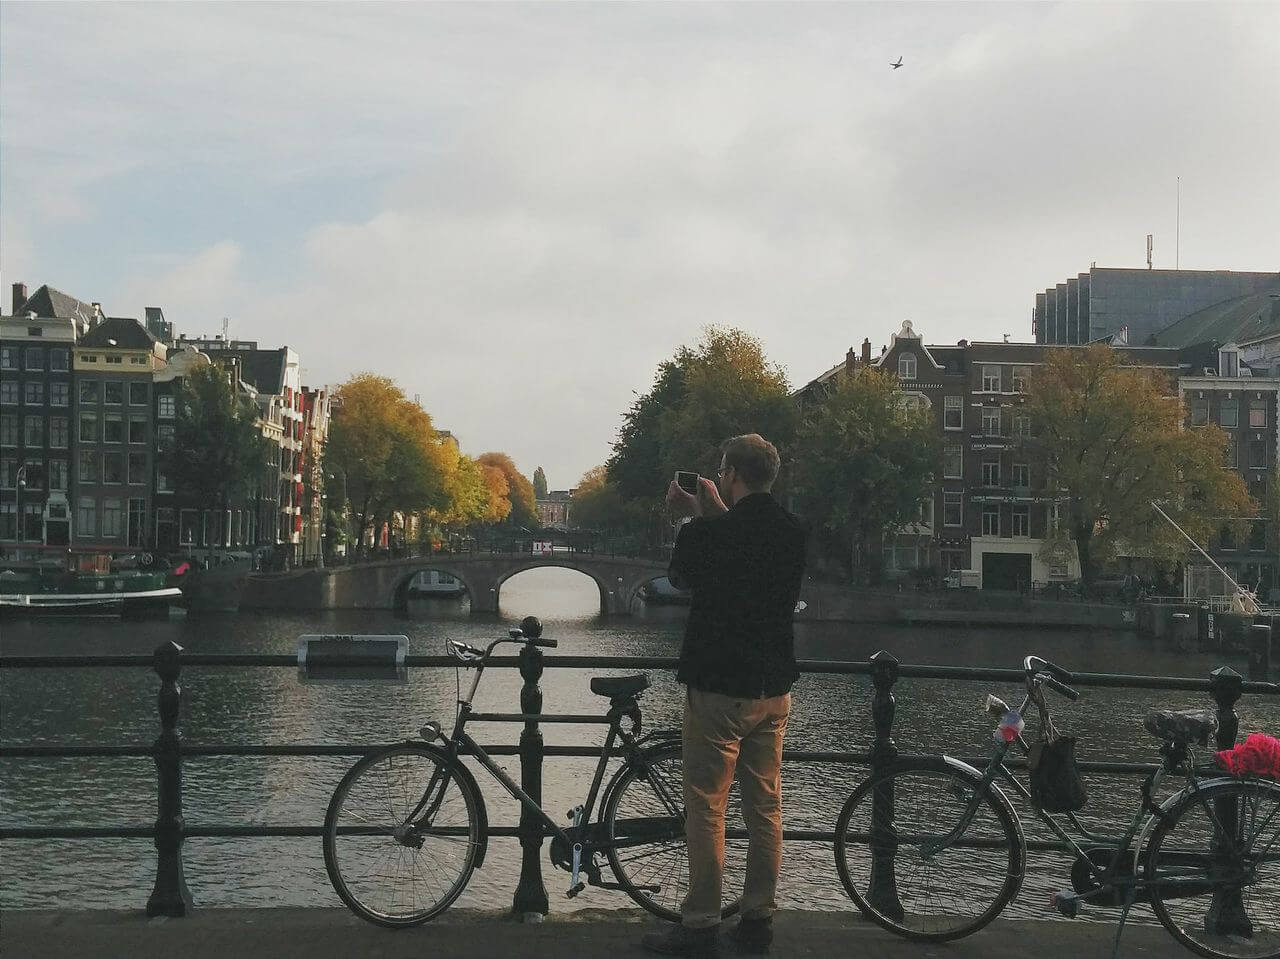 Amsterdam Travel: The Best Photography Spots in Amsterdam